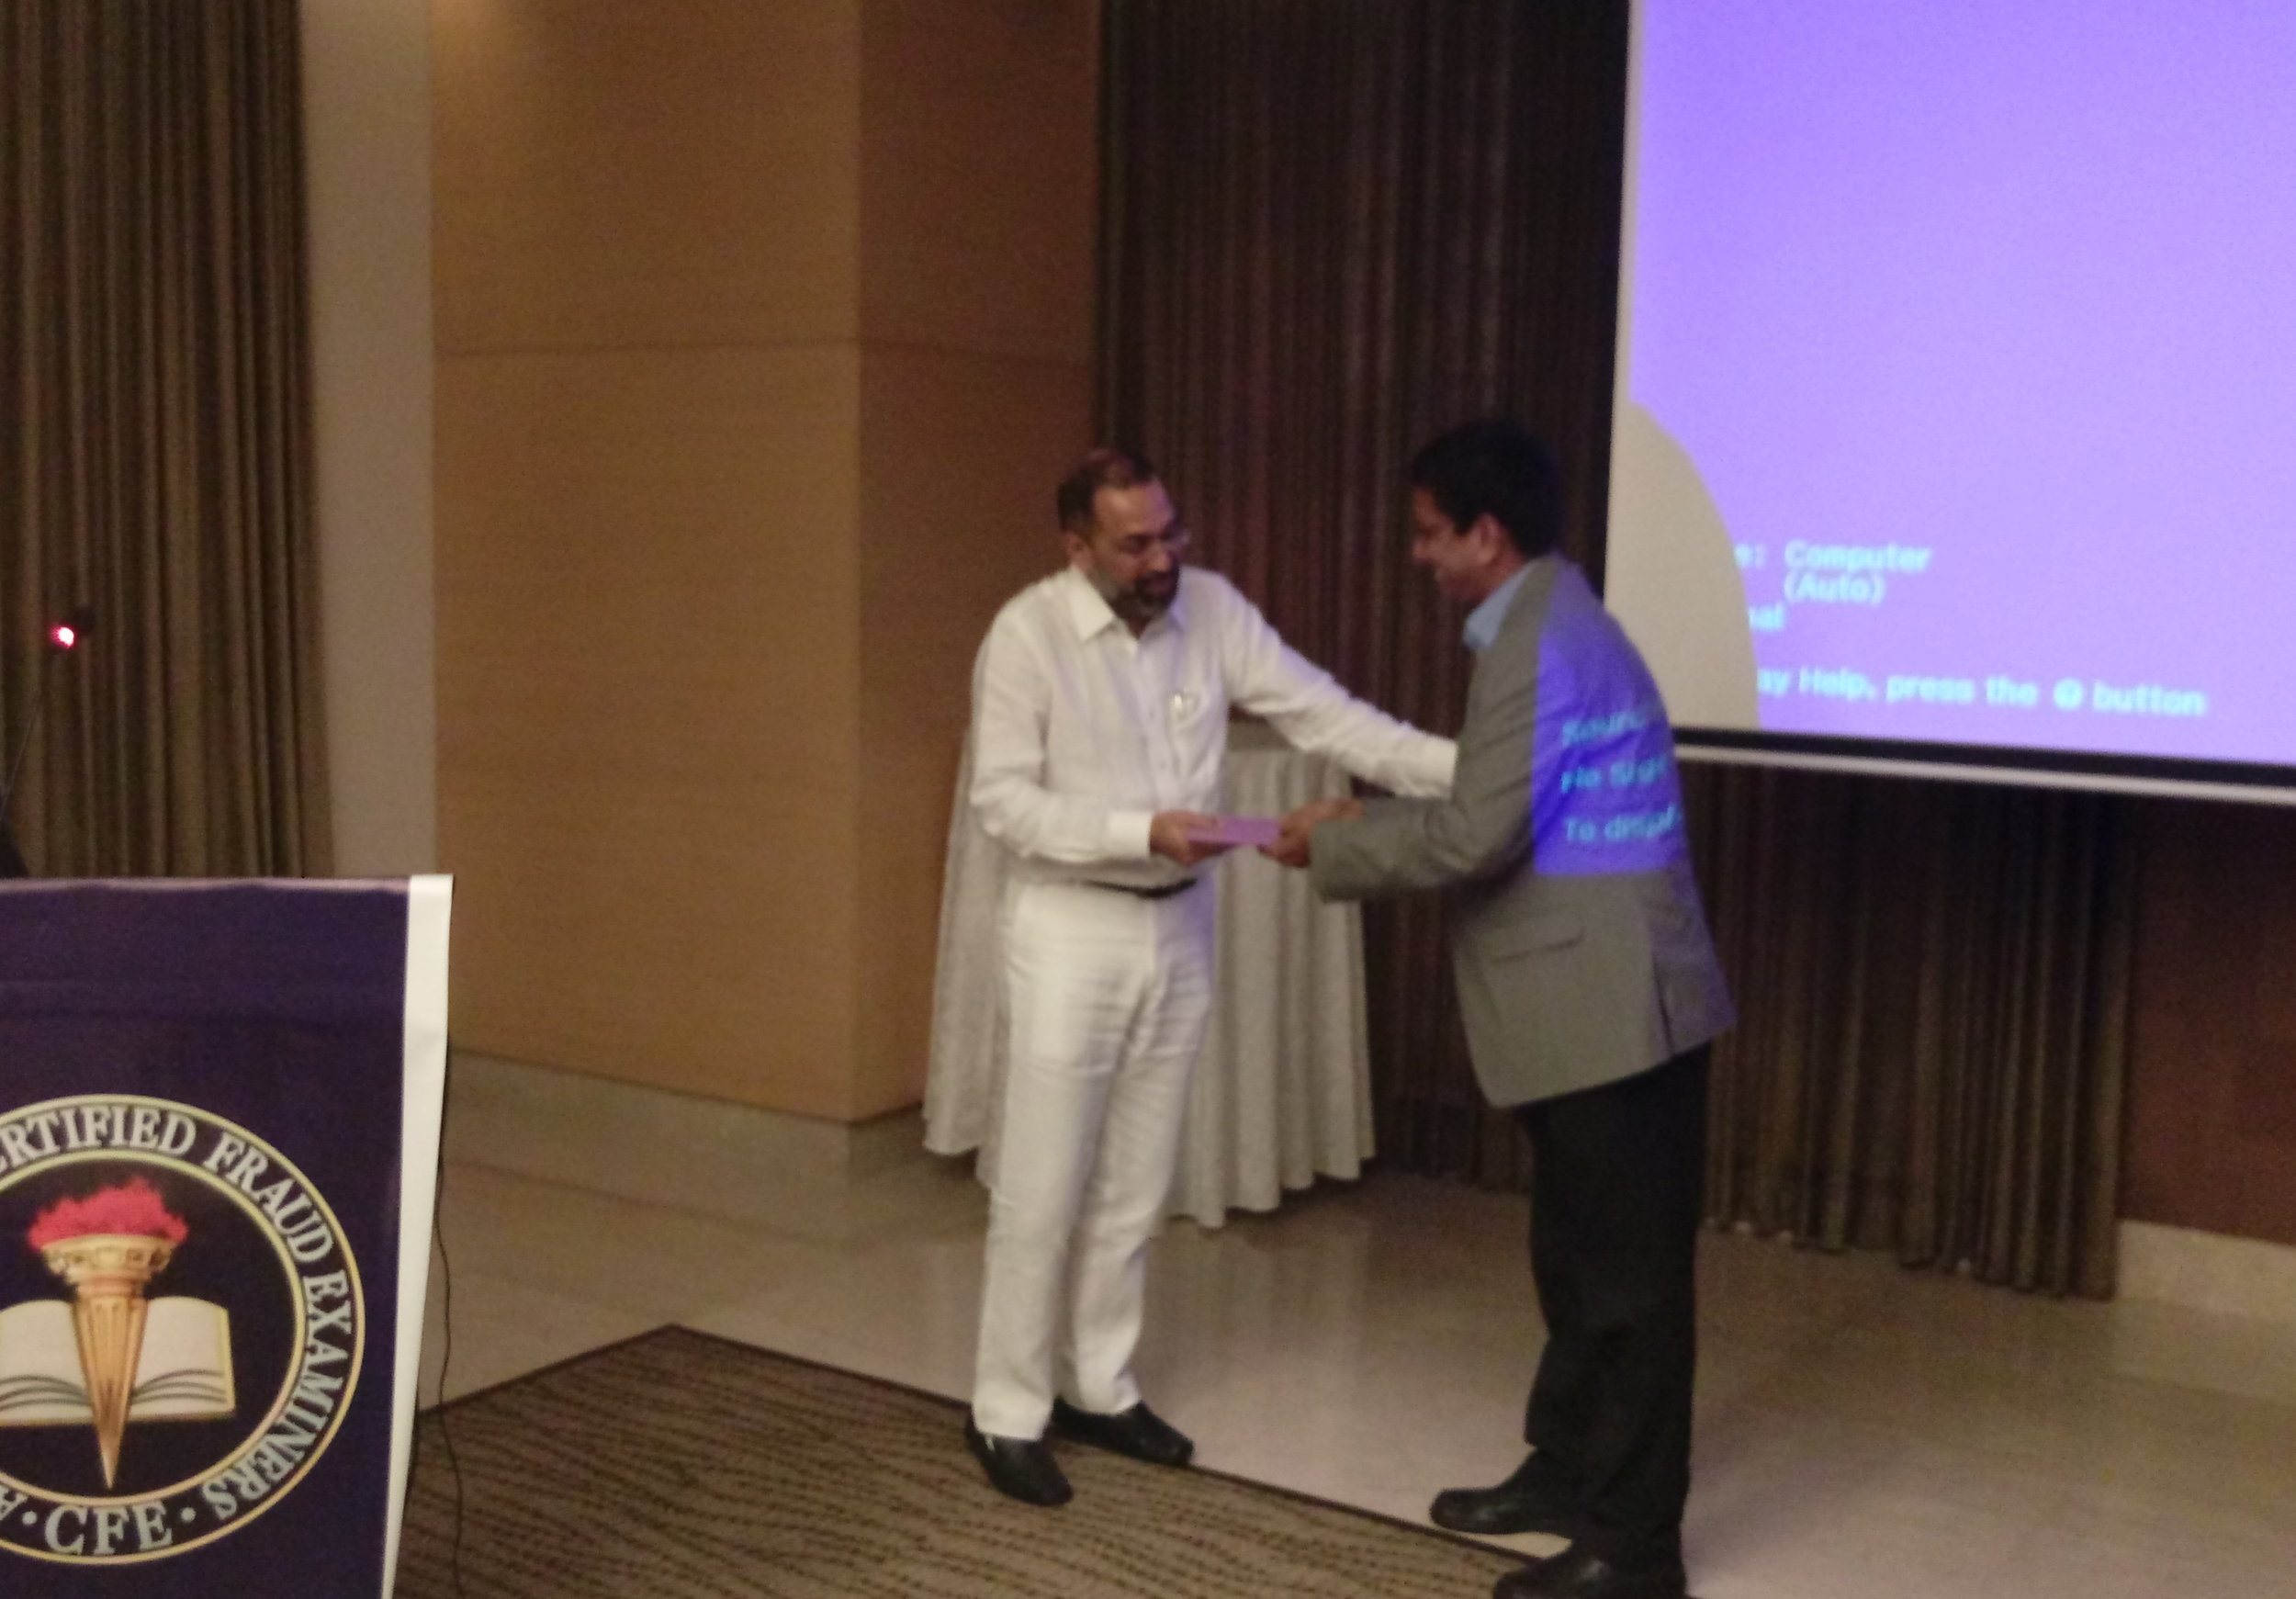 """Chennai Chapter president Raman Narasimhan presenting a gift to Dr. E.S. Krishnamoorthy after his presentation on """"The Godfather Paradox! Unraveling the Socially Enabled Psychopath."""""""